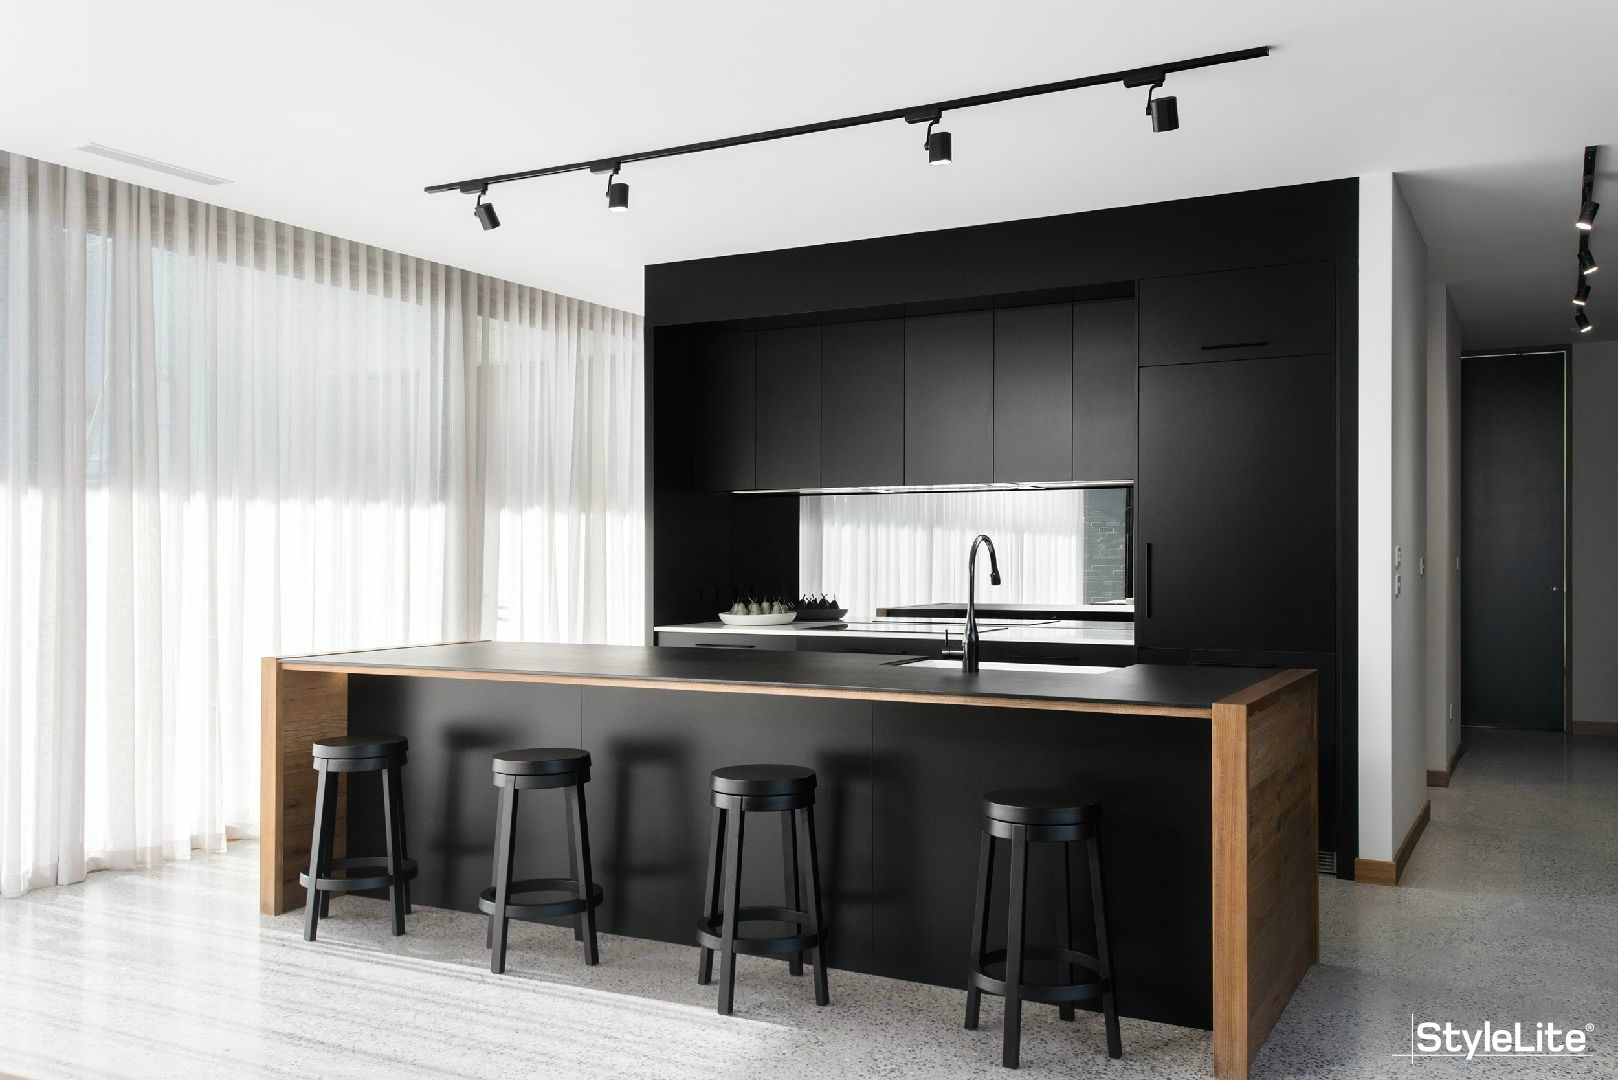 Impact Kitchens created this sophisticated kitchen using